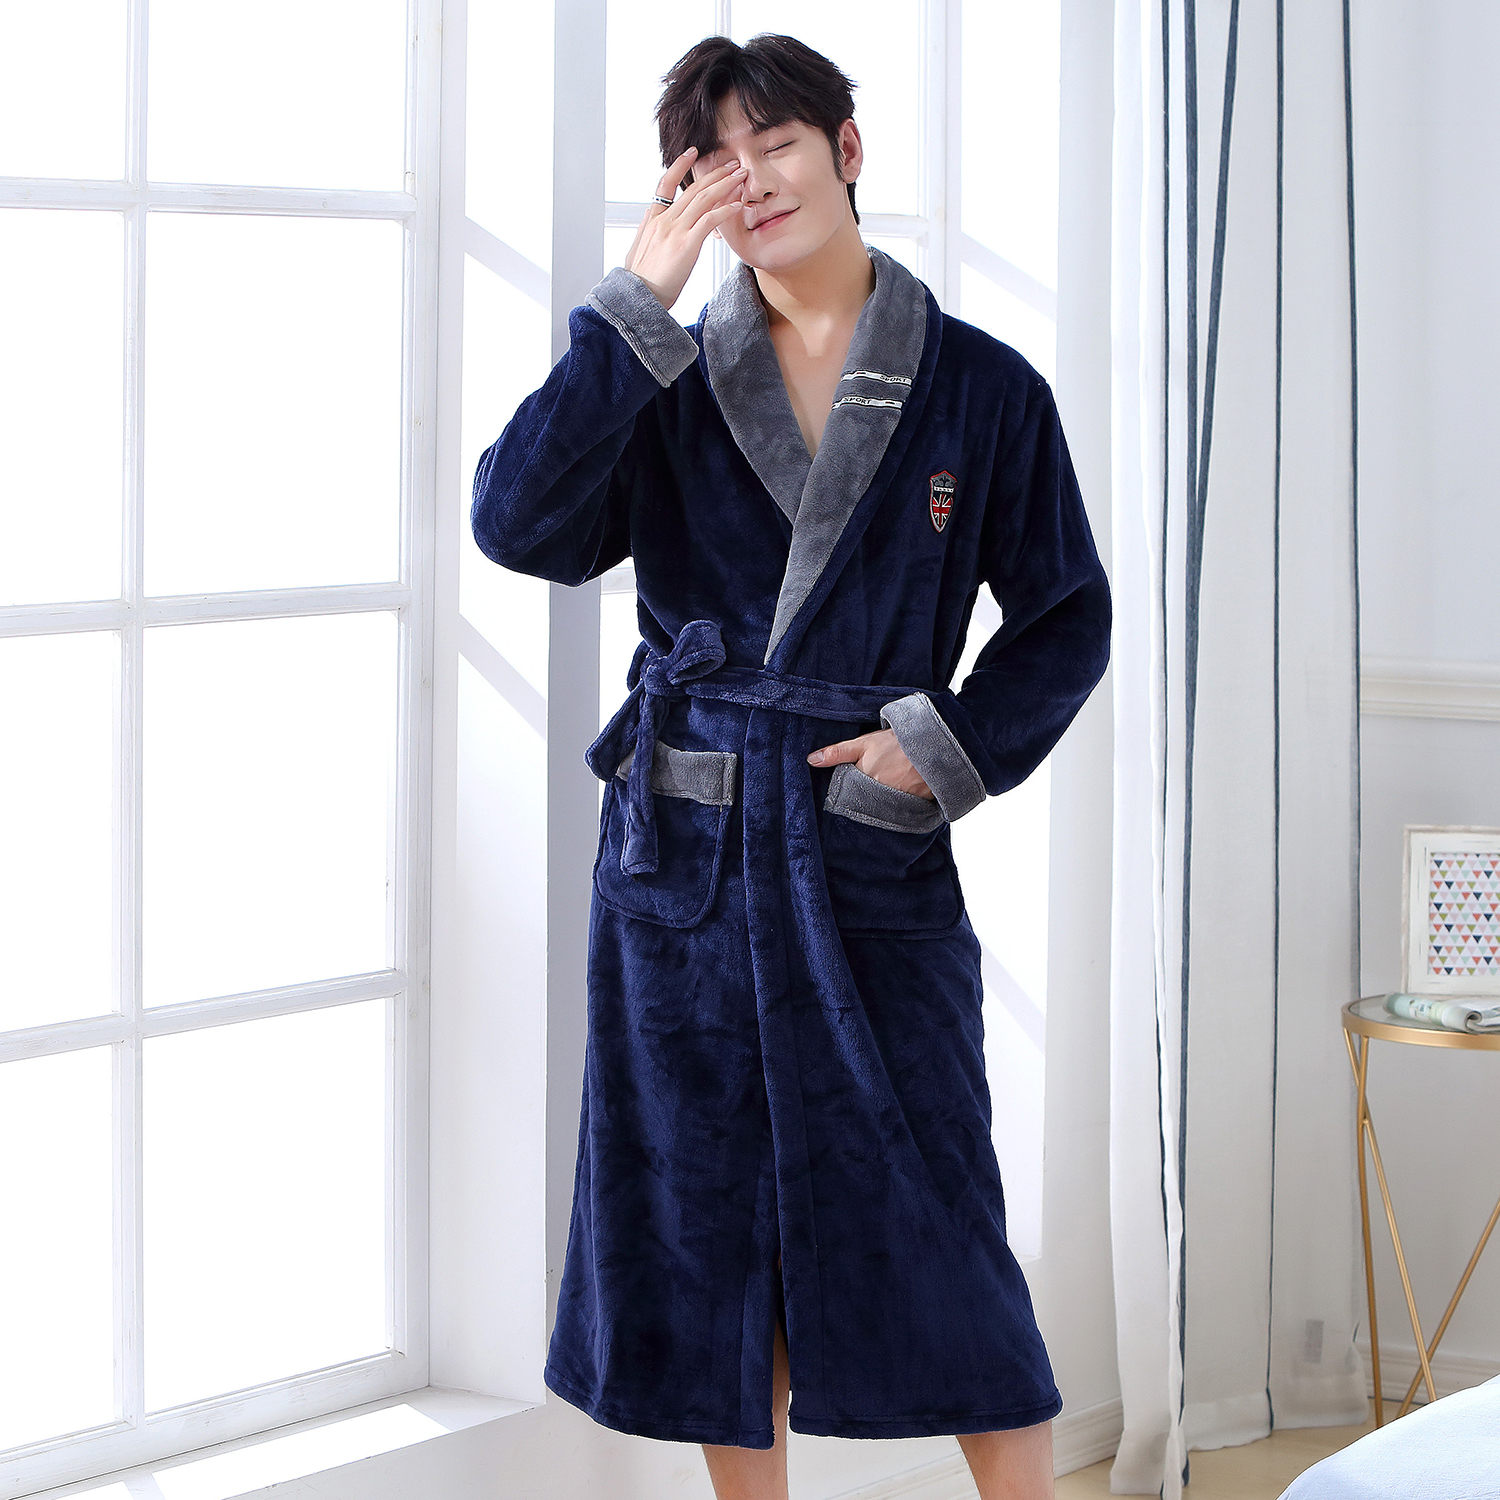 Winter Navy Blue Flannel Men Homewear Kimono Robe Gown Comfortable Keep Warm Sleepwear Nightgown Cxasual Soft Intimate Pajamas